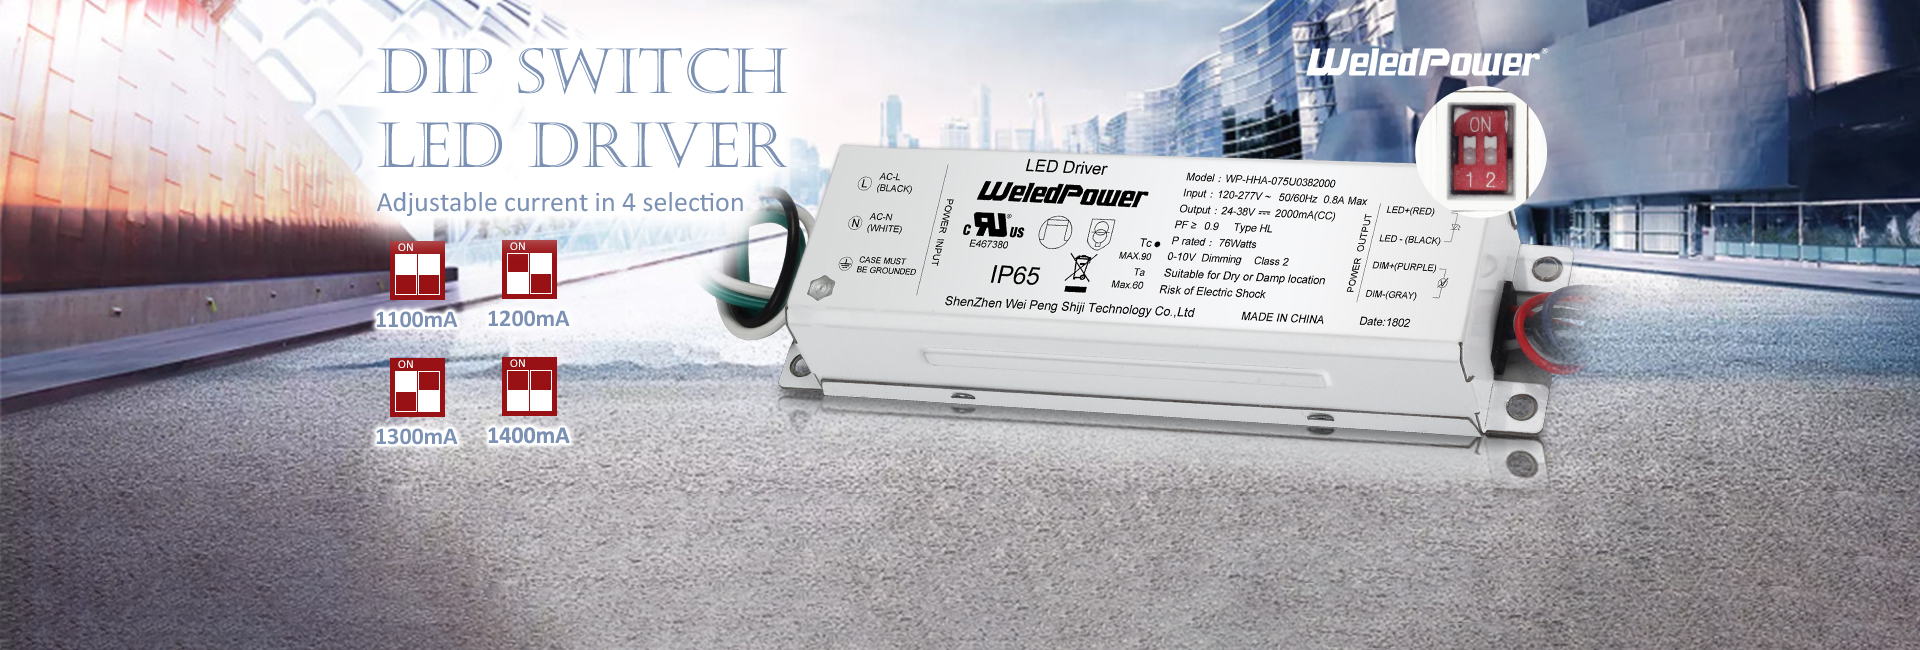 DIP Switch LED driver